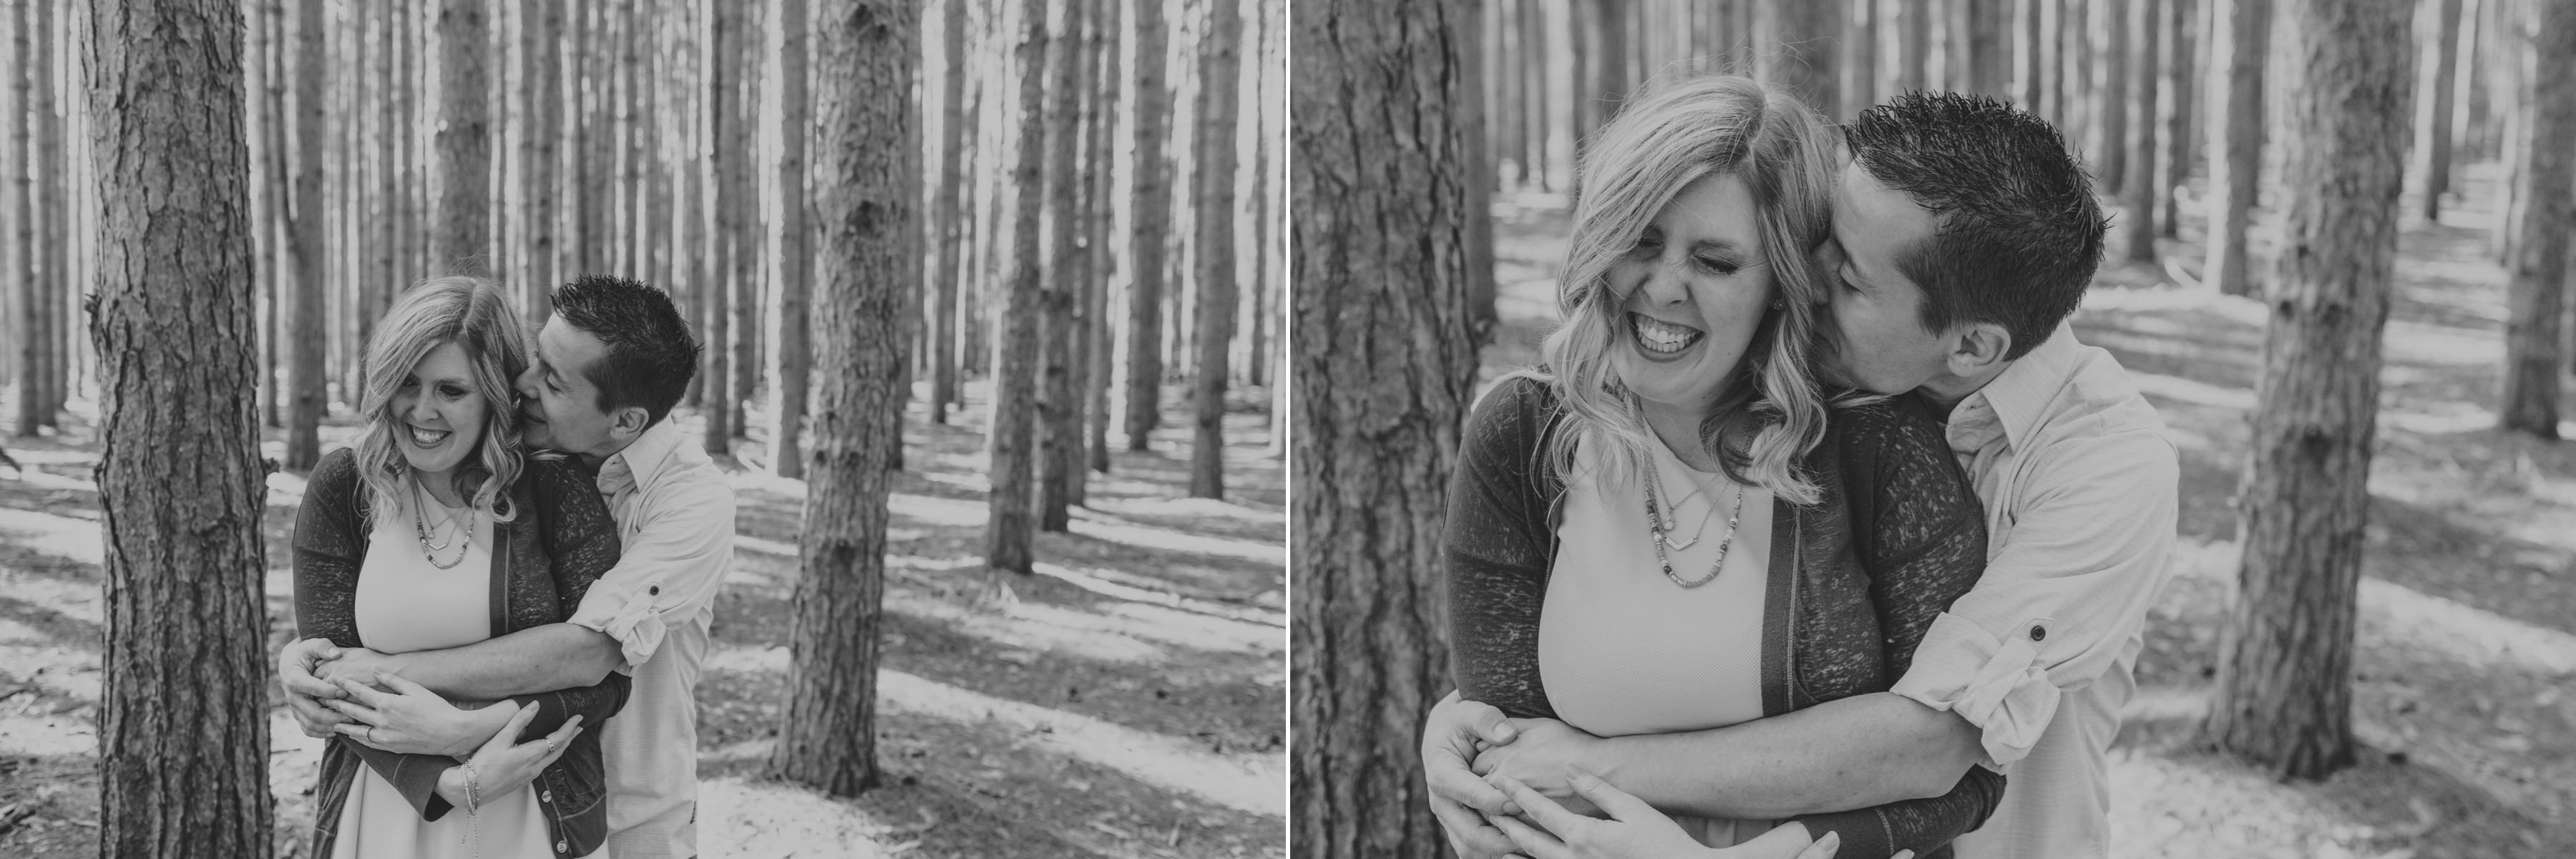 Toledo-Oak-Openings-theNWOhioSpot-Pines--Engagement-Photos